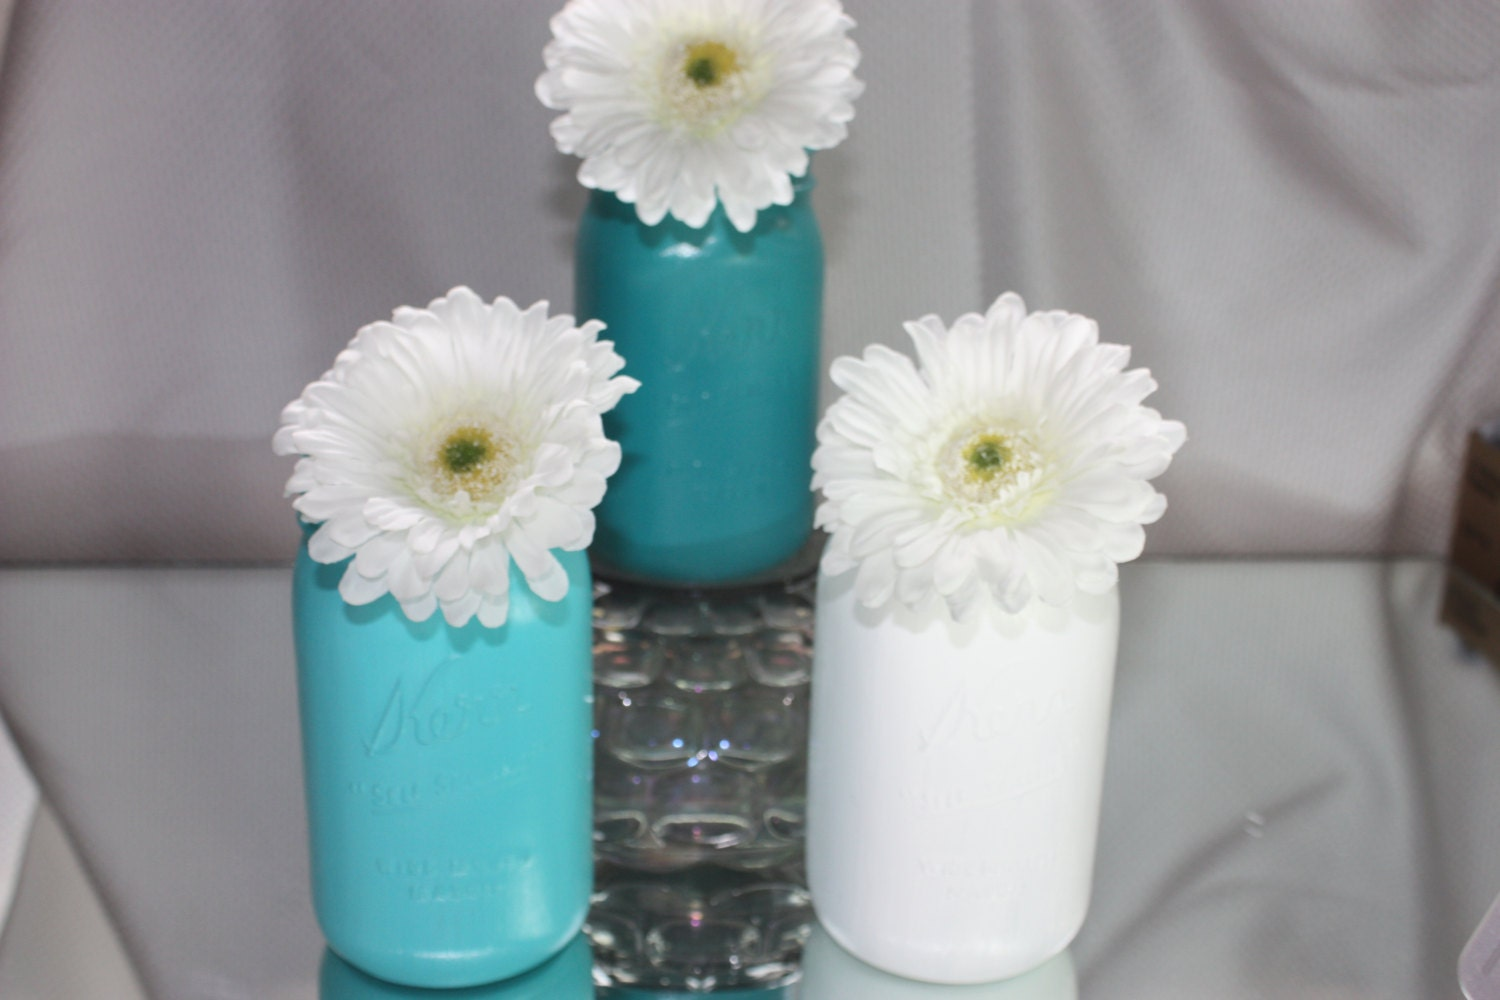 Blue wedding centerpiece vase and white for your